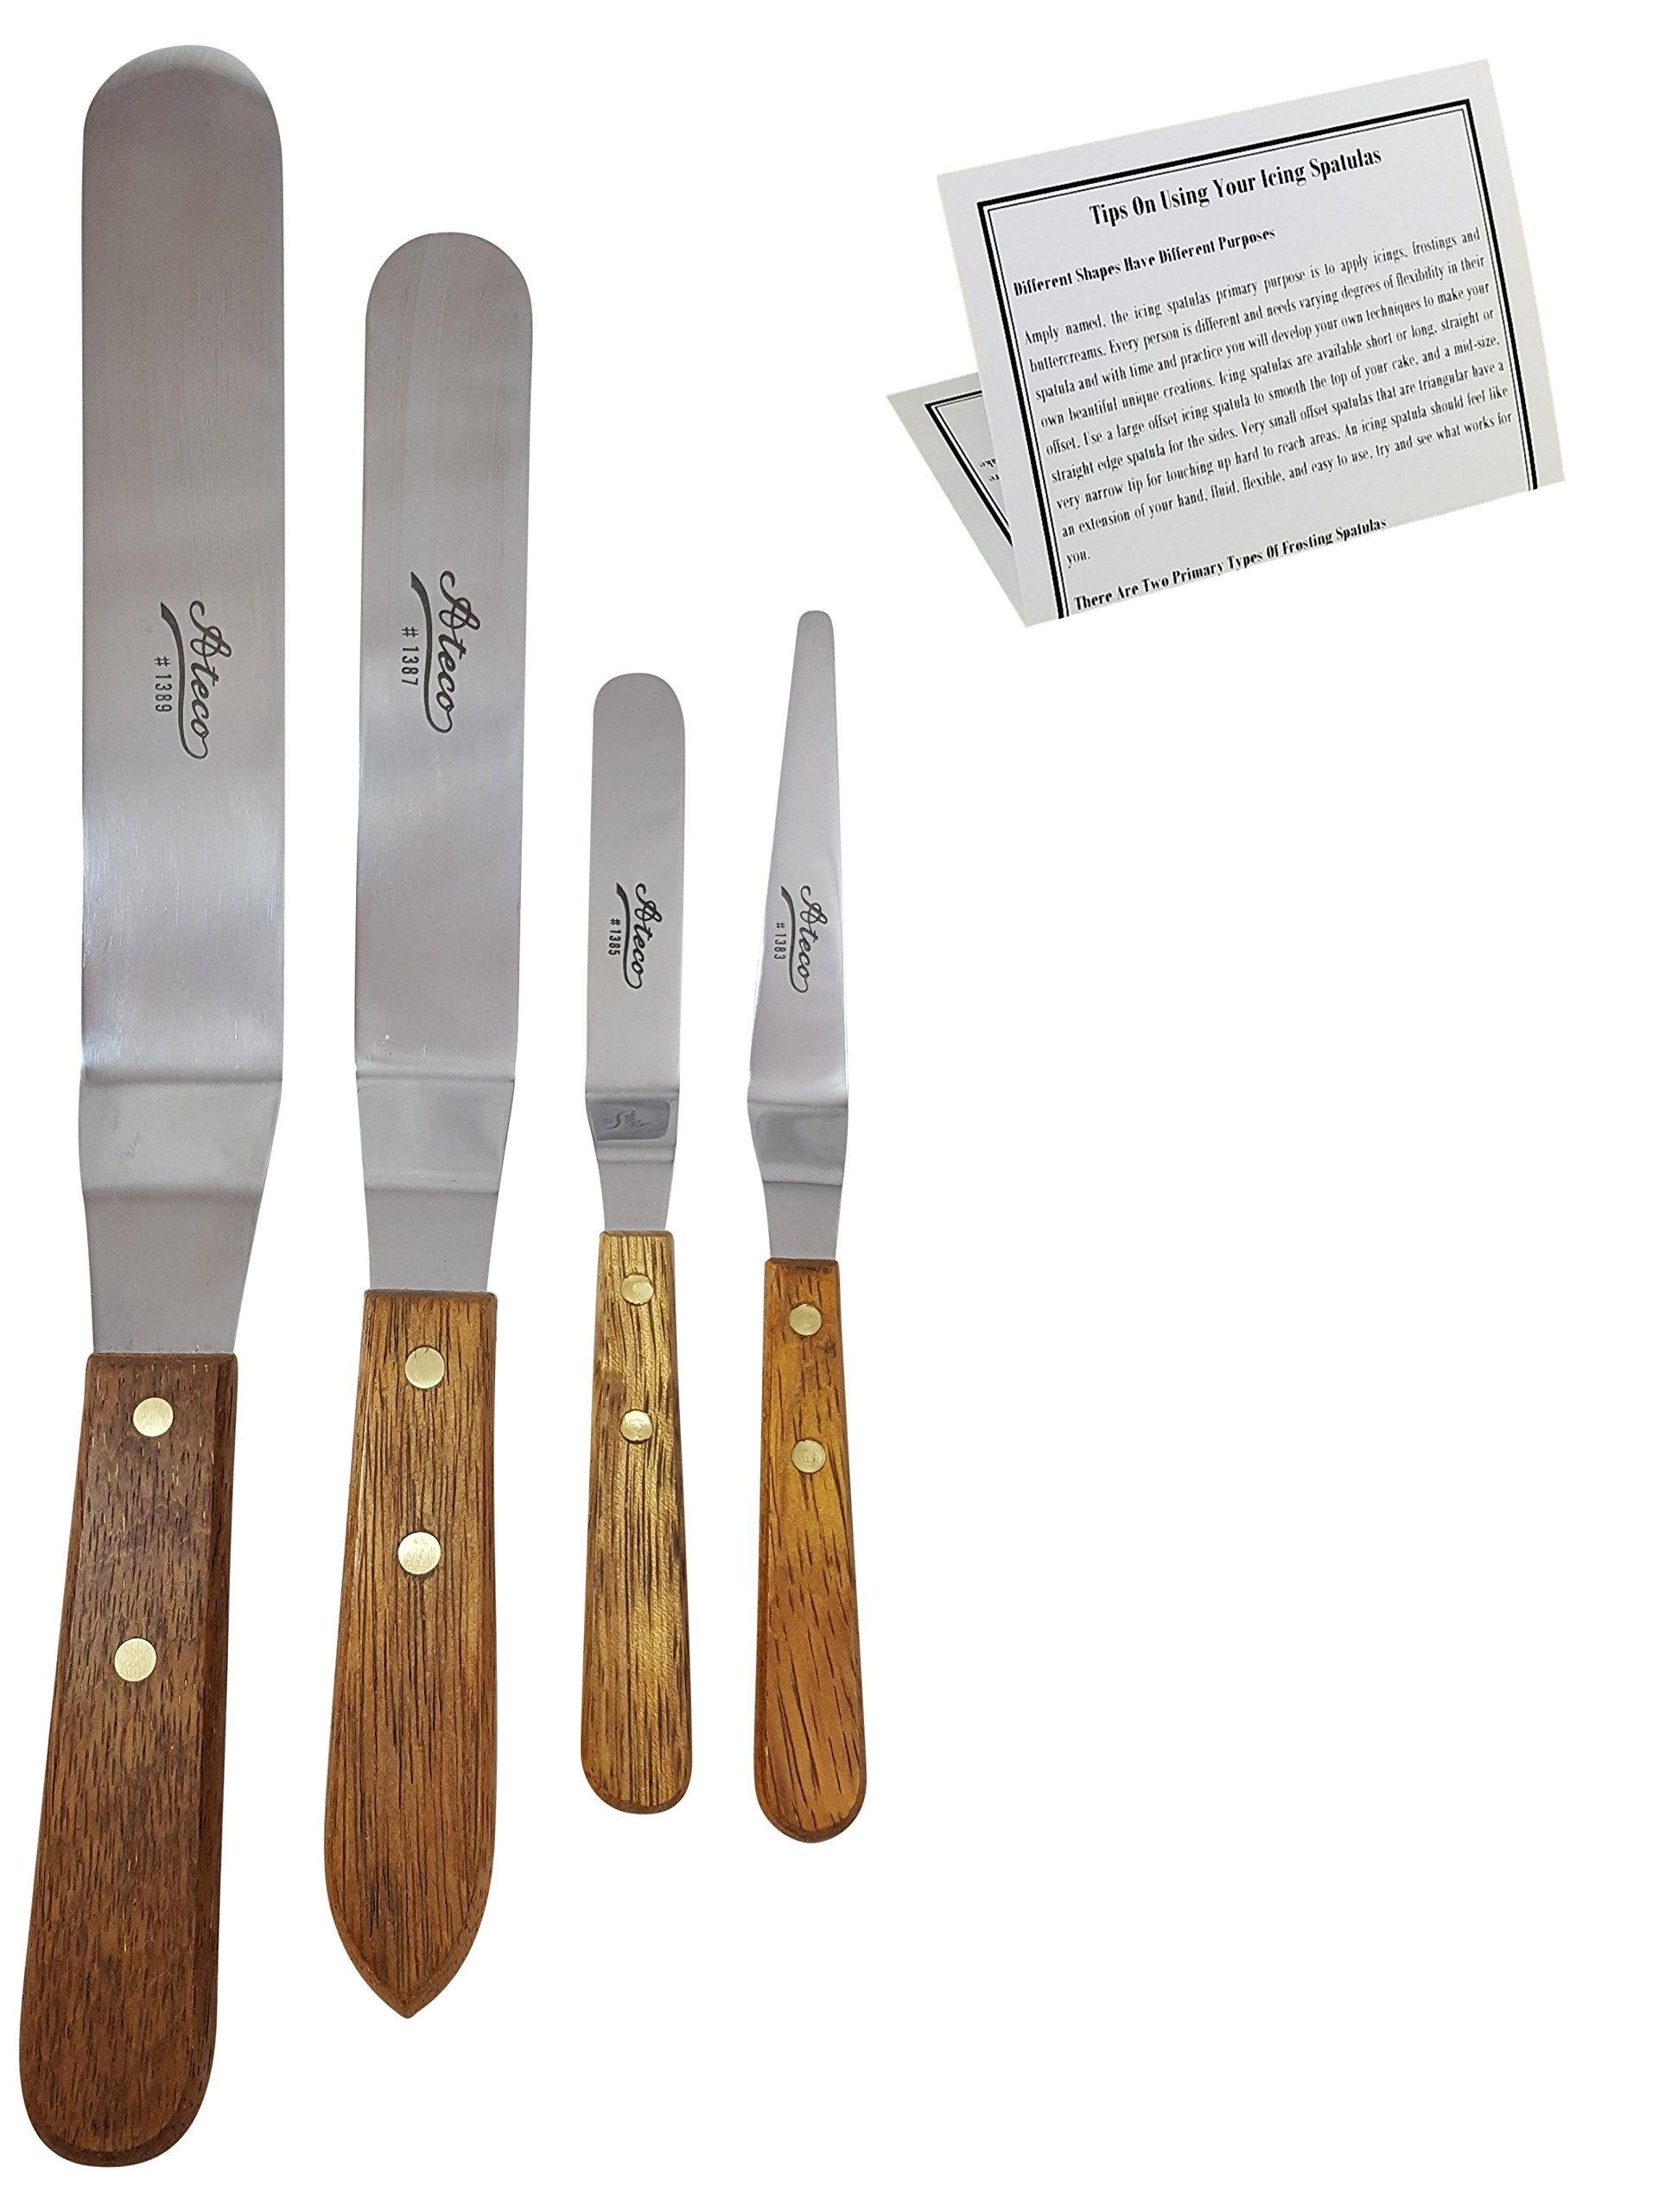 CurrentLiving Ateco Offset Icing Spatula Set, 4 Piece Cake Frosting Stainless Steel Decorating Tools with Wood Handles.